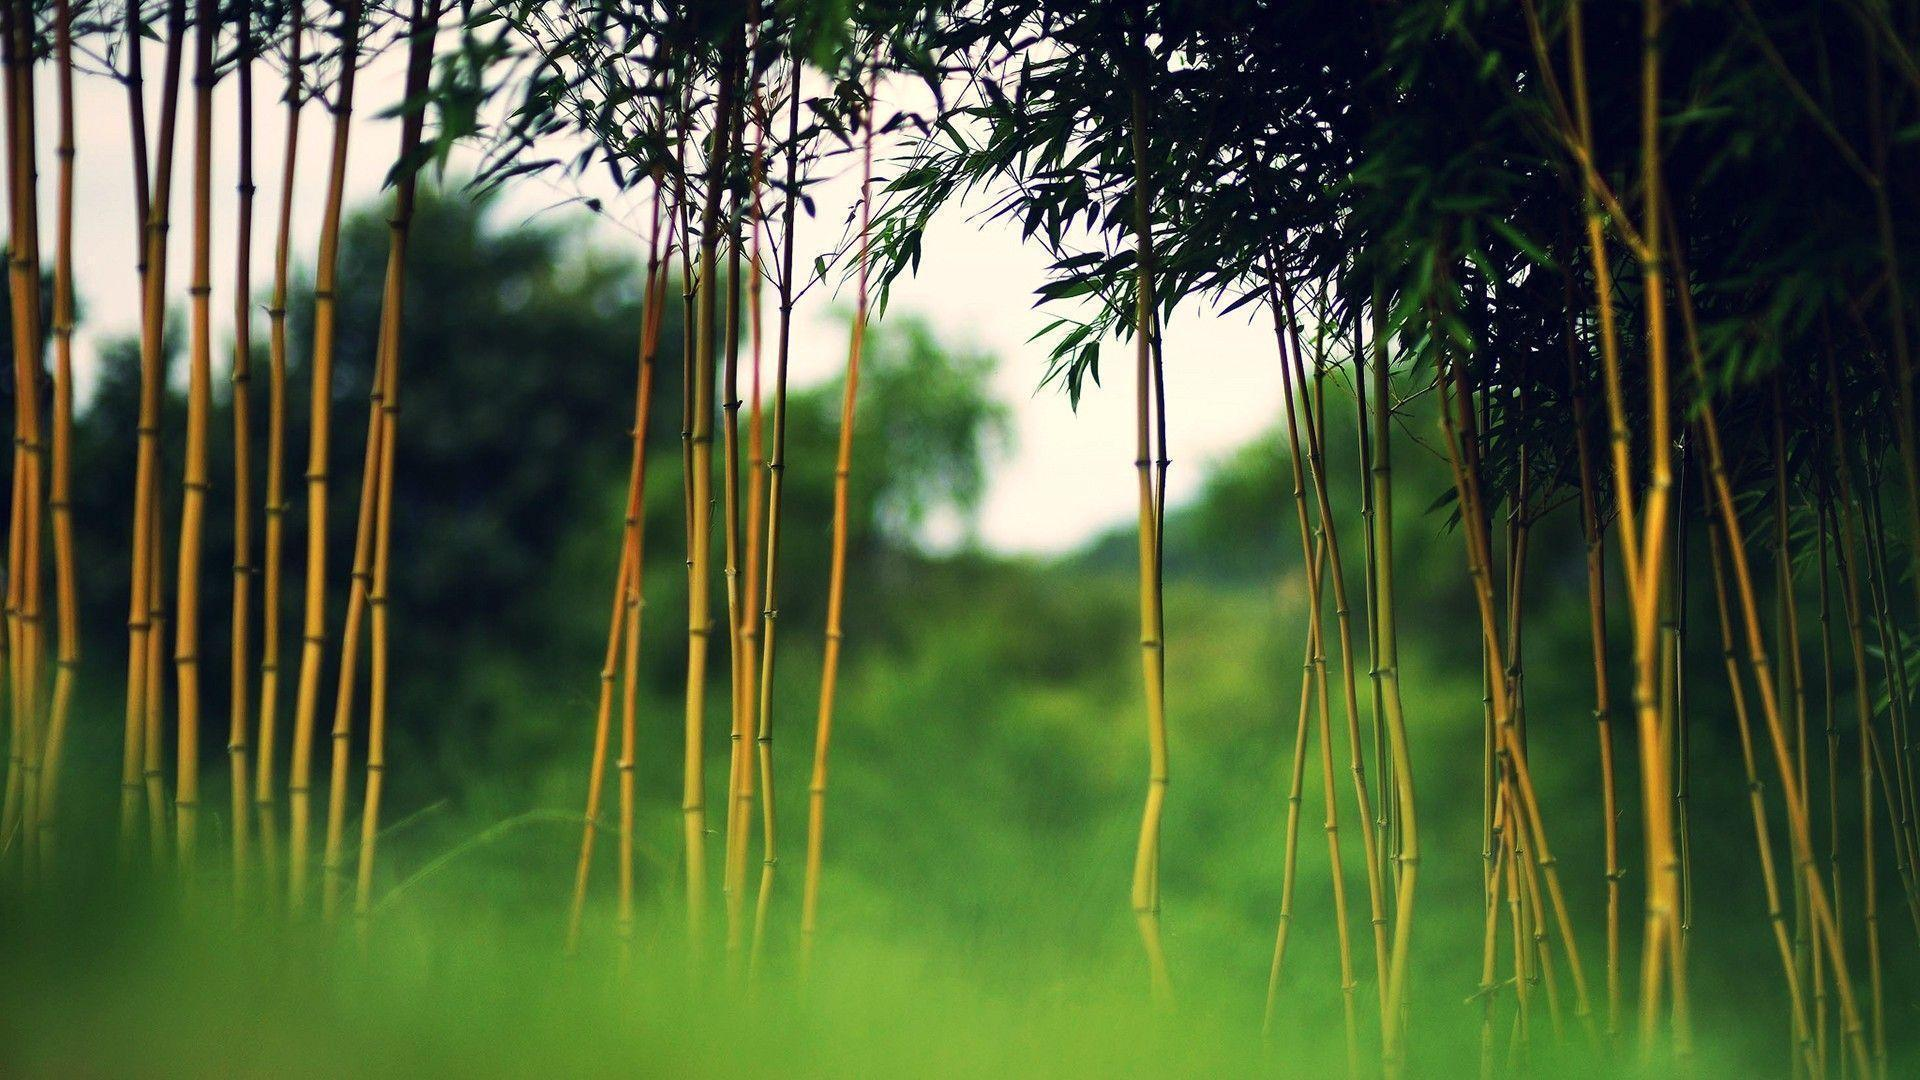 Bamboo desktop wallpapers wallpaper cave for Bamboo wallpaper for walls